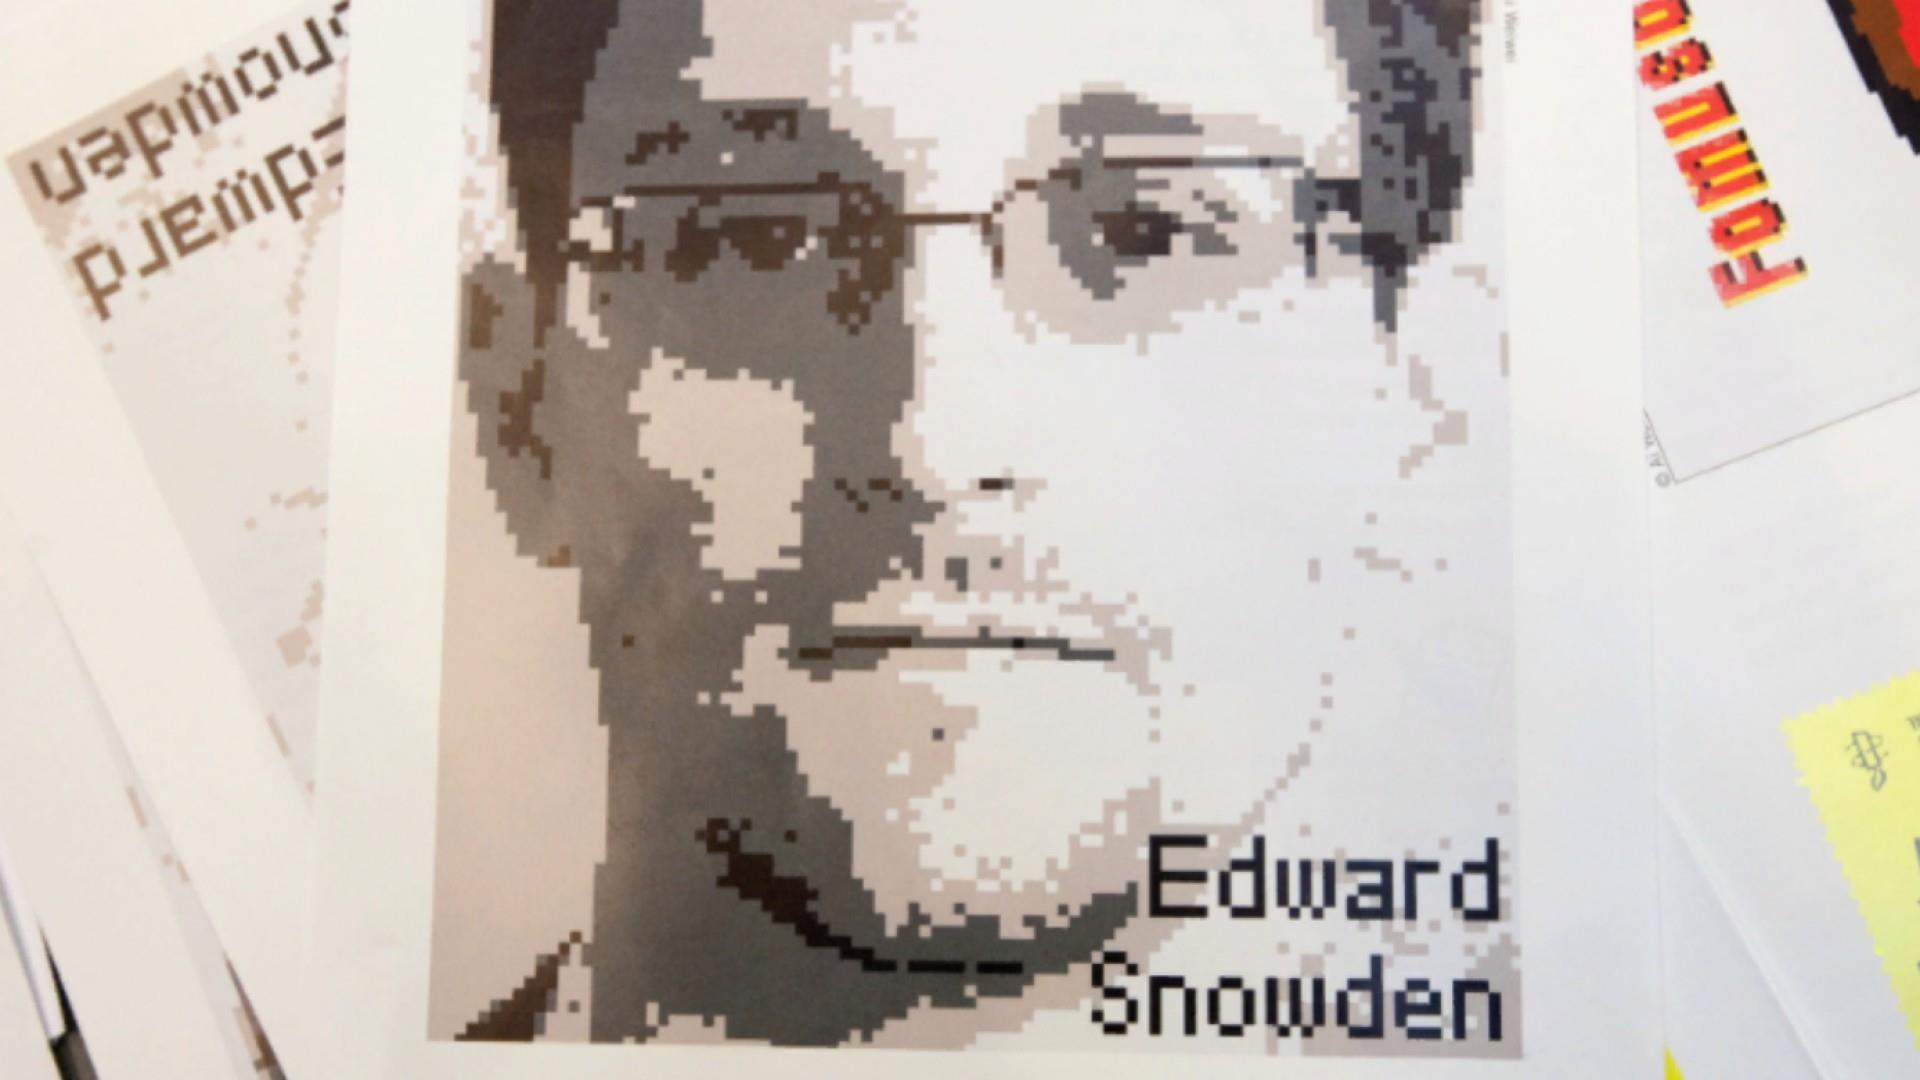 Edward Snowden: The government can hack your iPhone like a criminal to track you